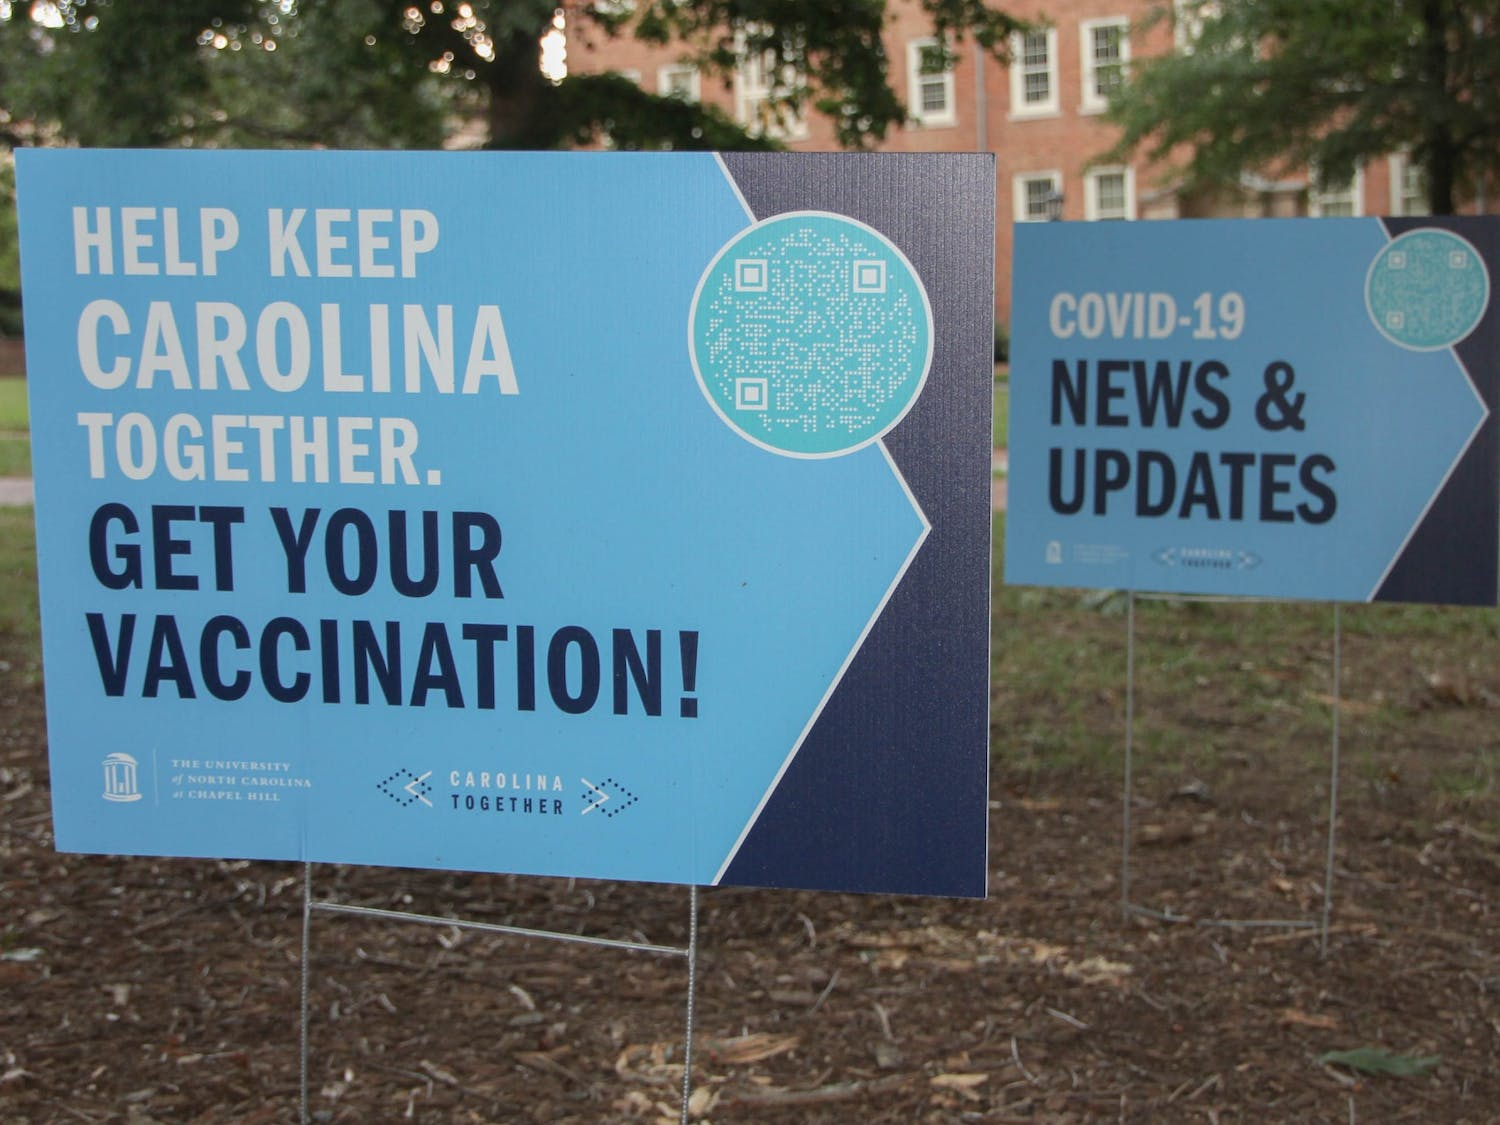 Signs reminding Tar Heels' to get vaccinated were photographed on the Pit on Aug. 22, 2021. Unlike other major universities, UNC has not mandated the COVID-19 vaccine.